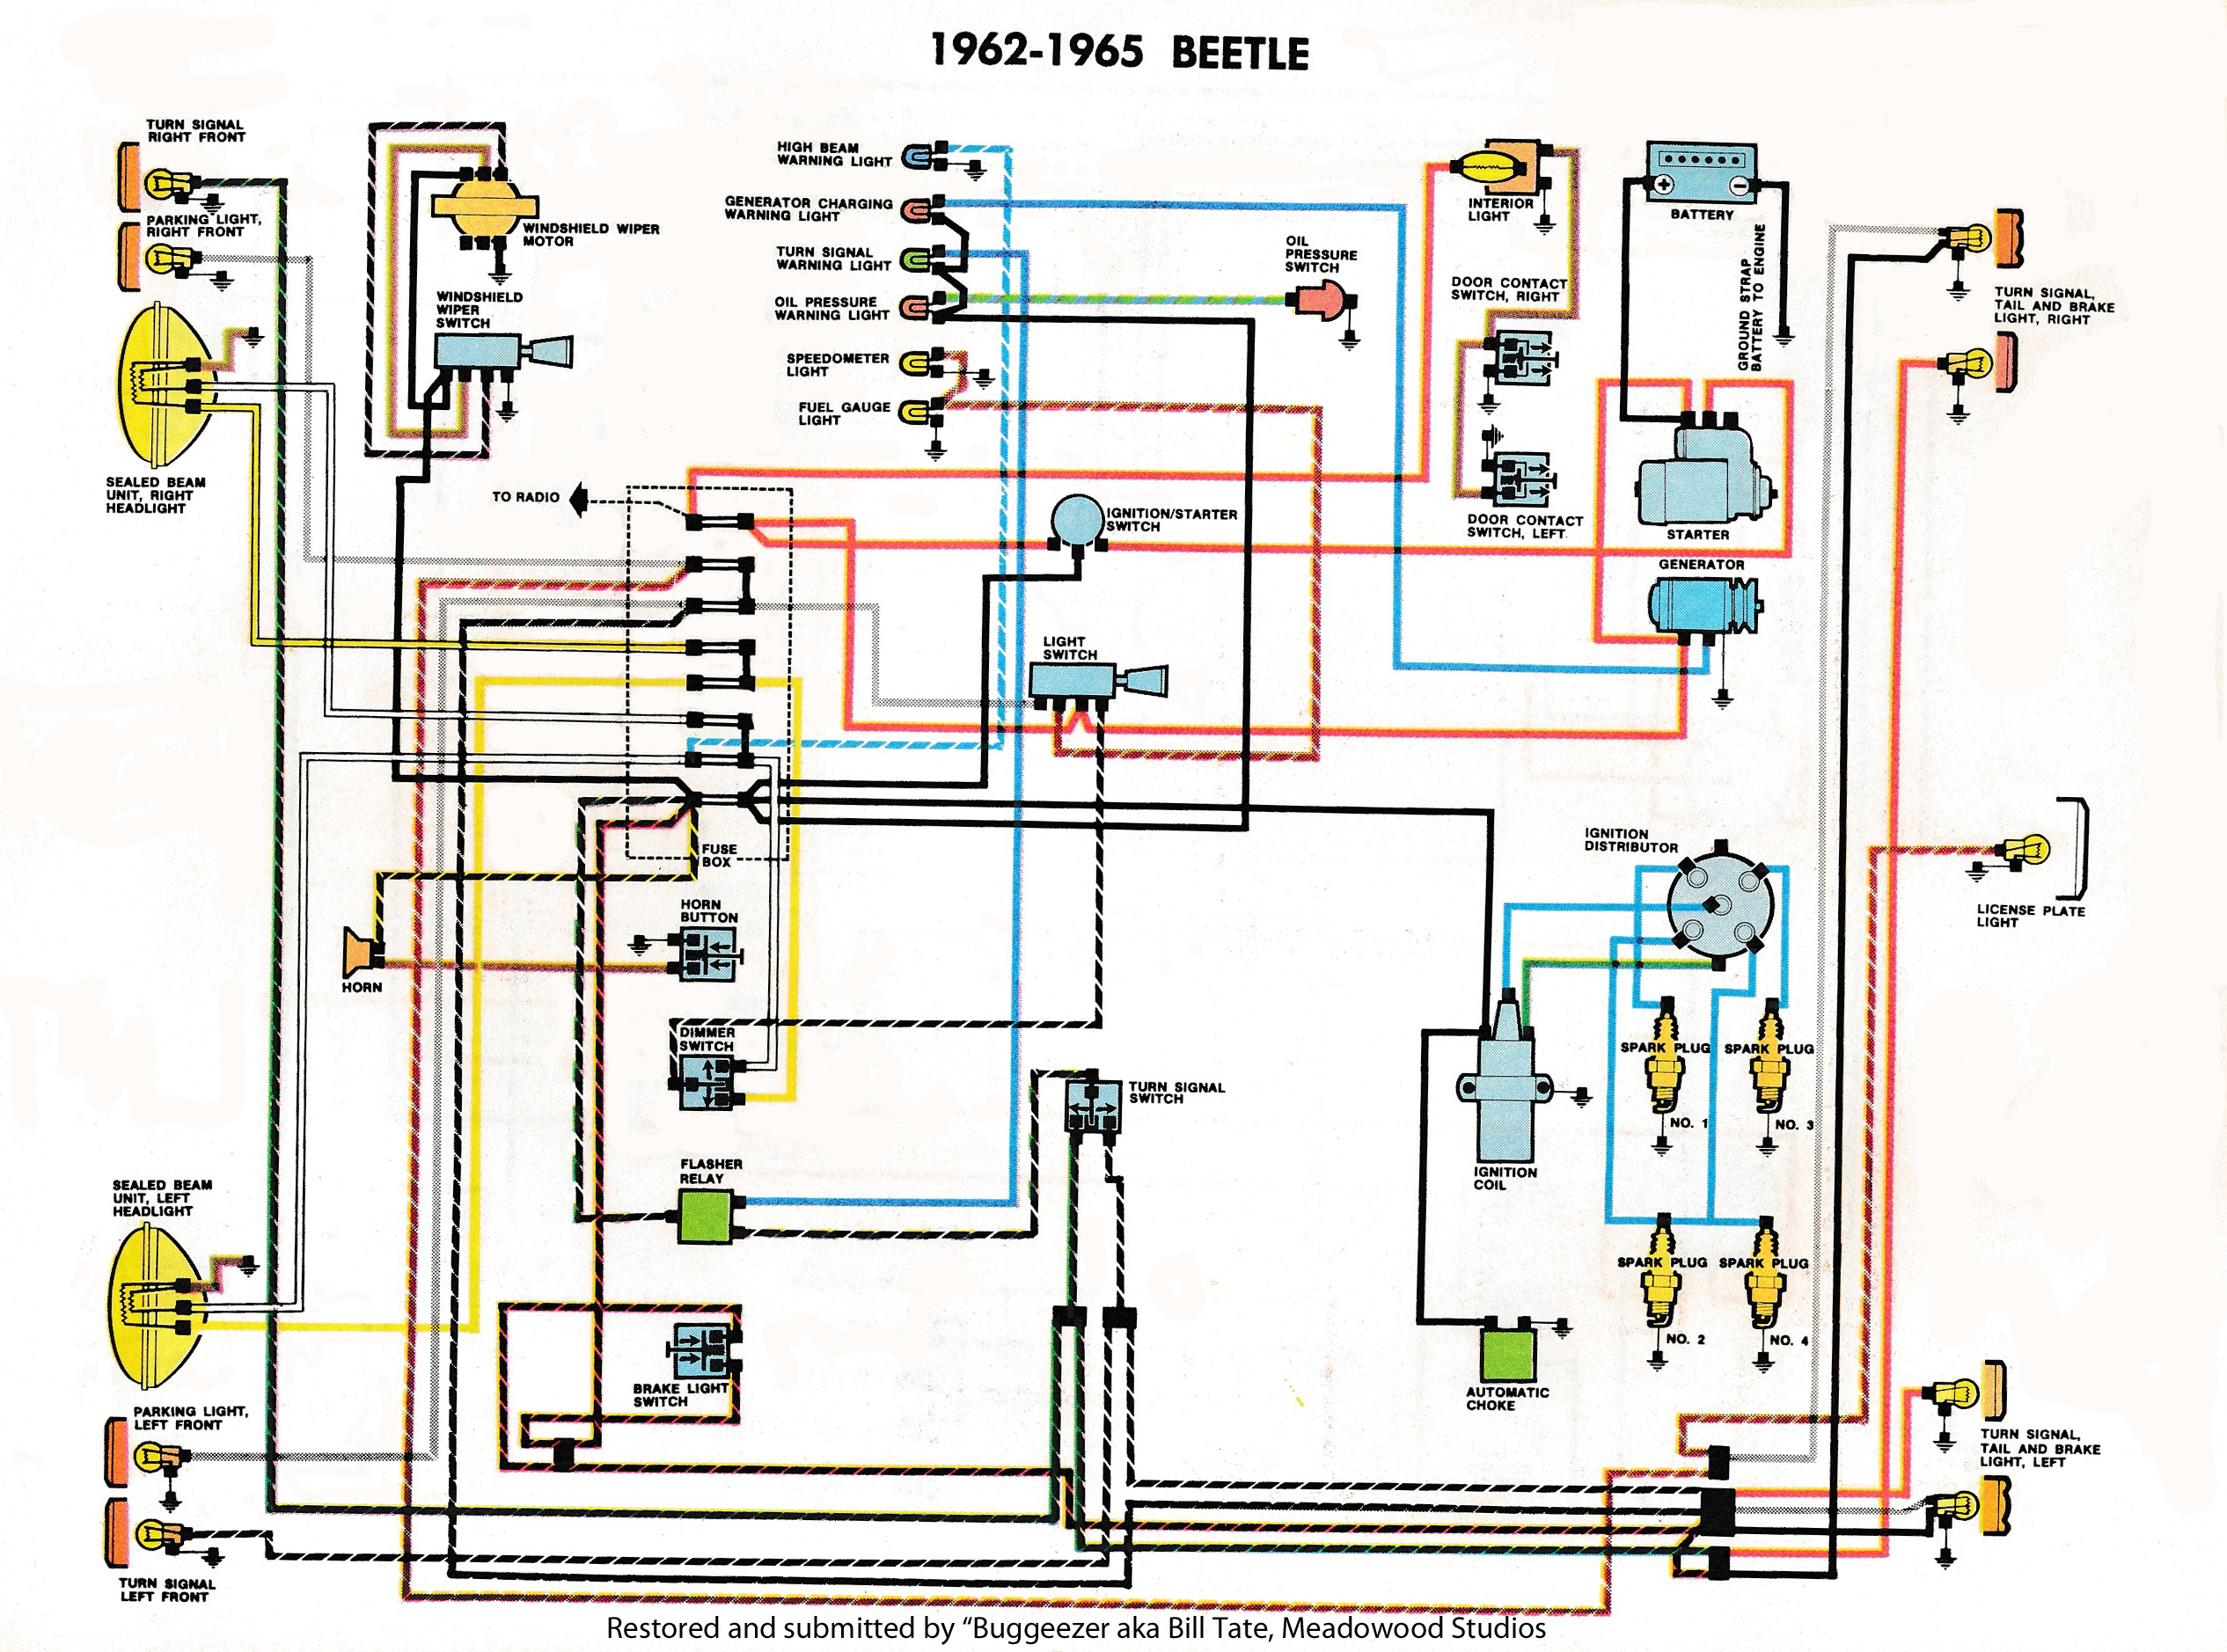 Beetle_1962 65_Clymers thesamba com type 1 wiring diagrams 1973 Super Beetle Wiring Diagram at crackthecode.co